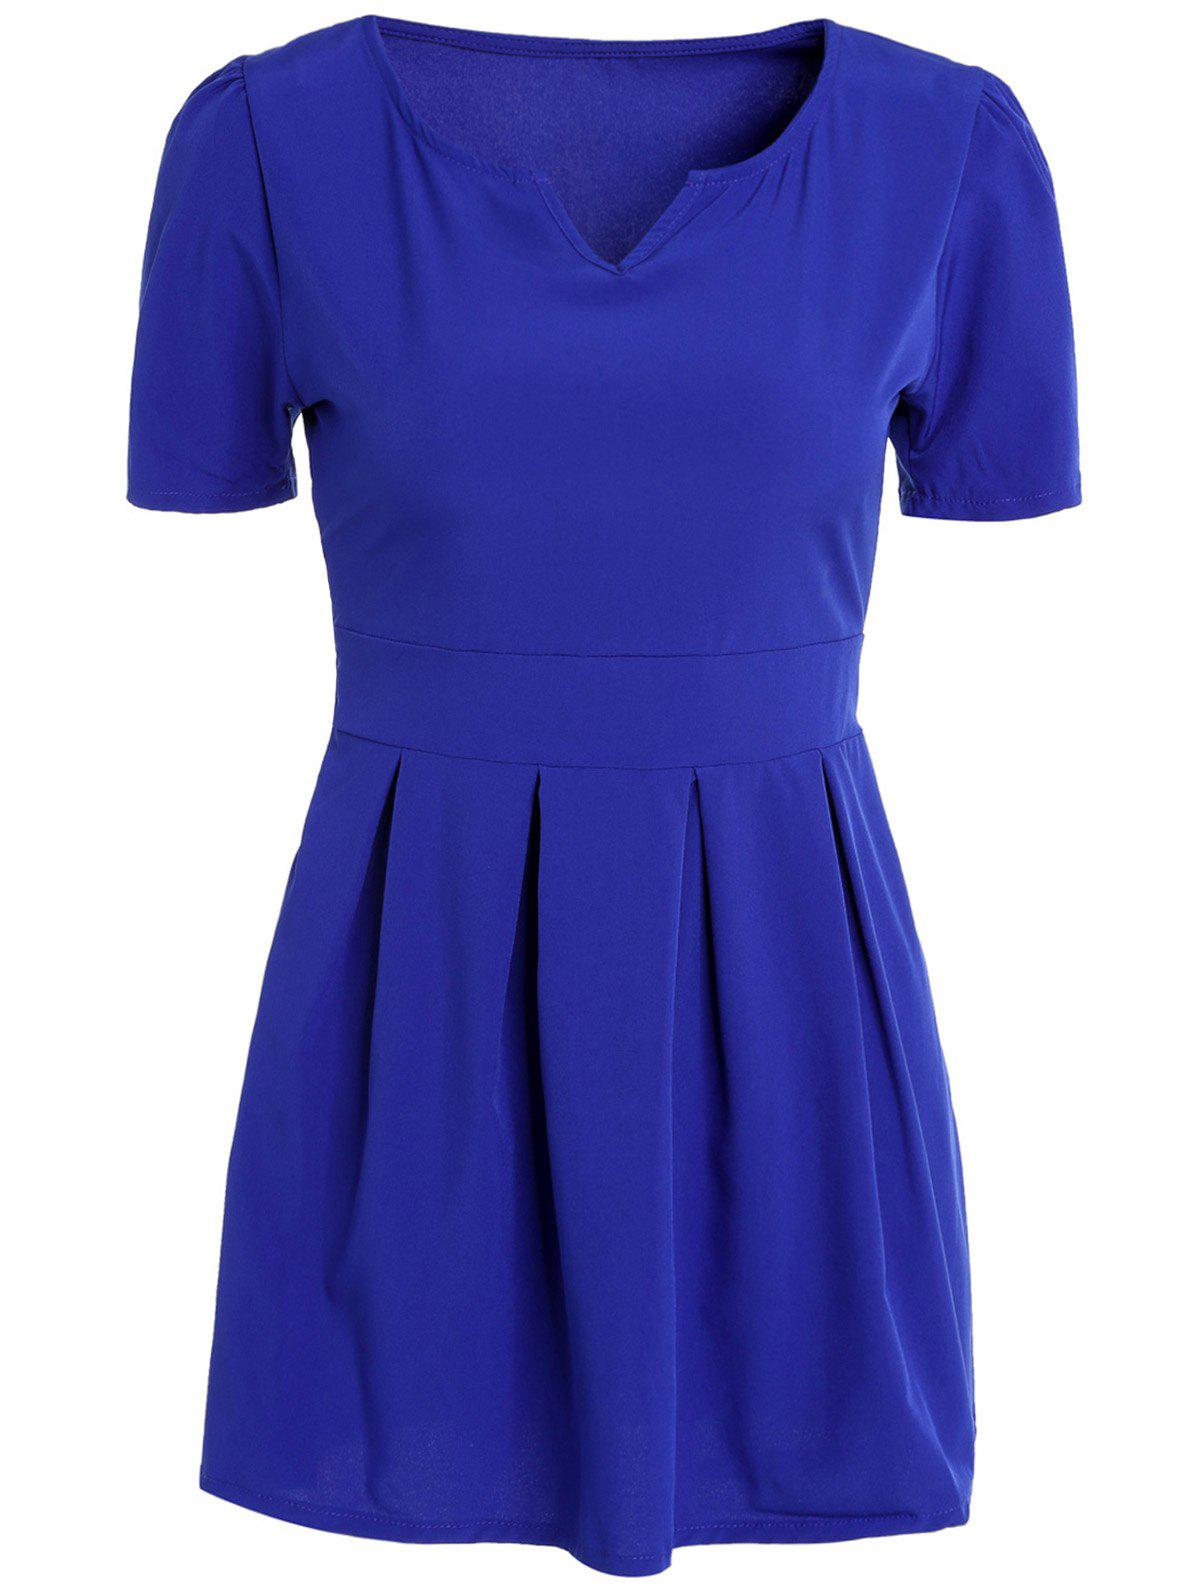 Chic Solid Color V-Neck Short Sleeve High Waist Pleated Mini Ball Dress For Women - SAPPHIRE BLUE S